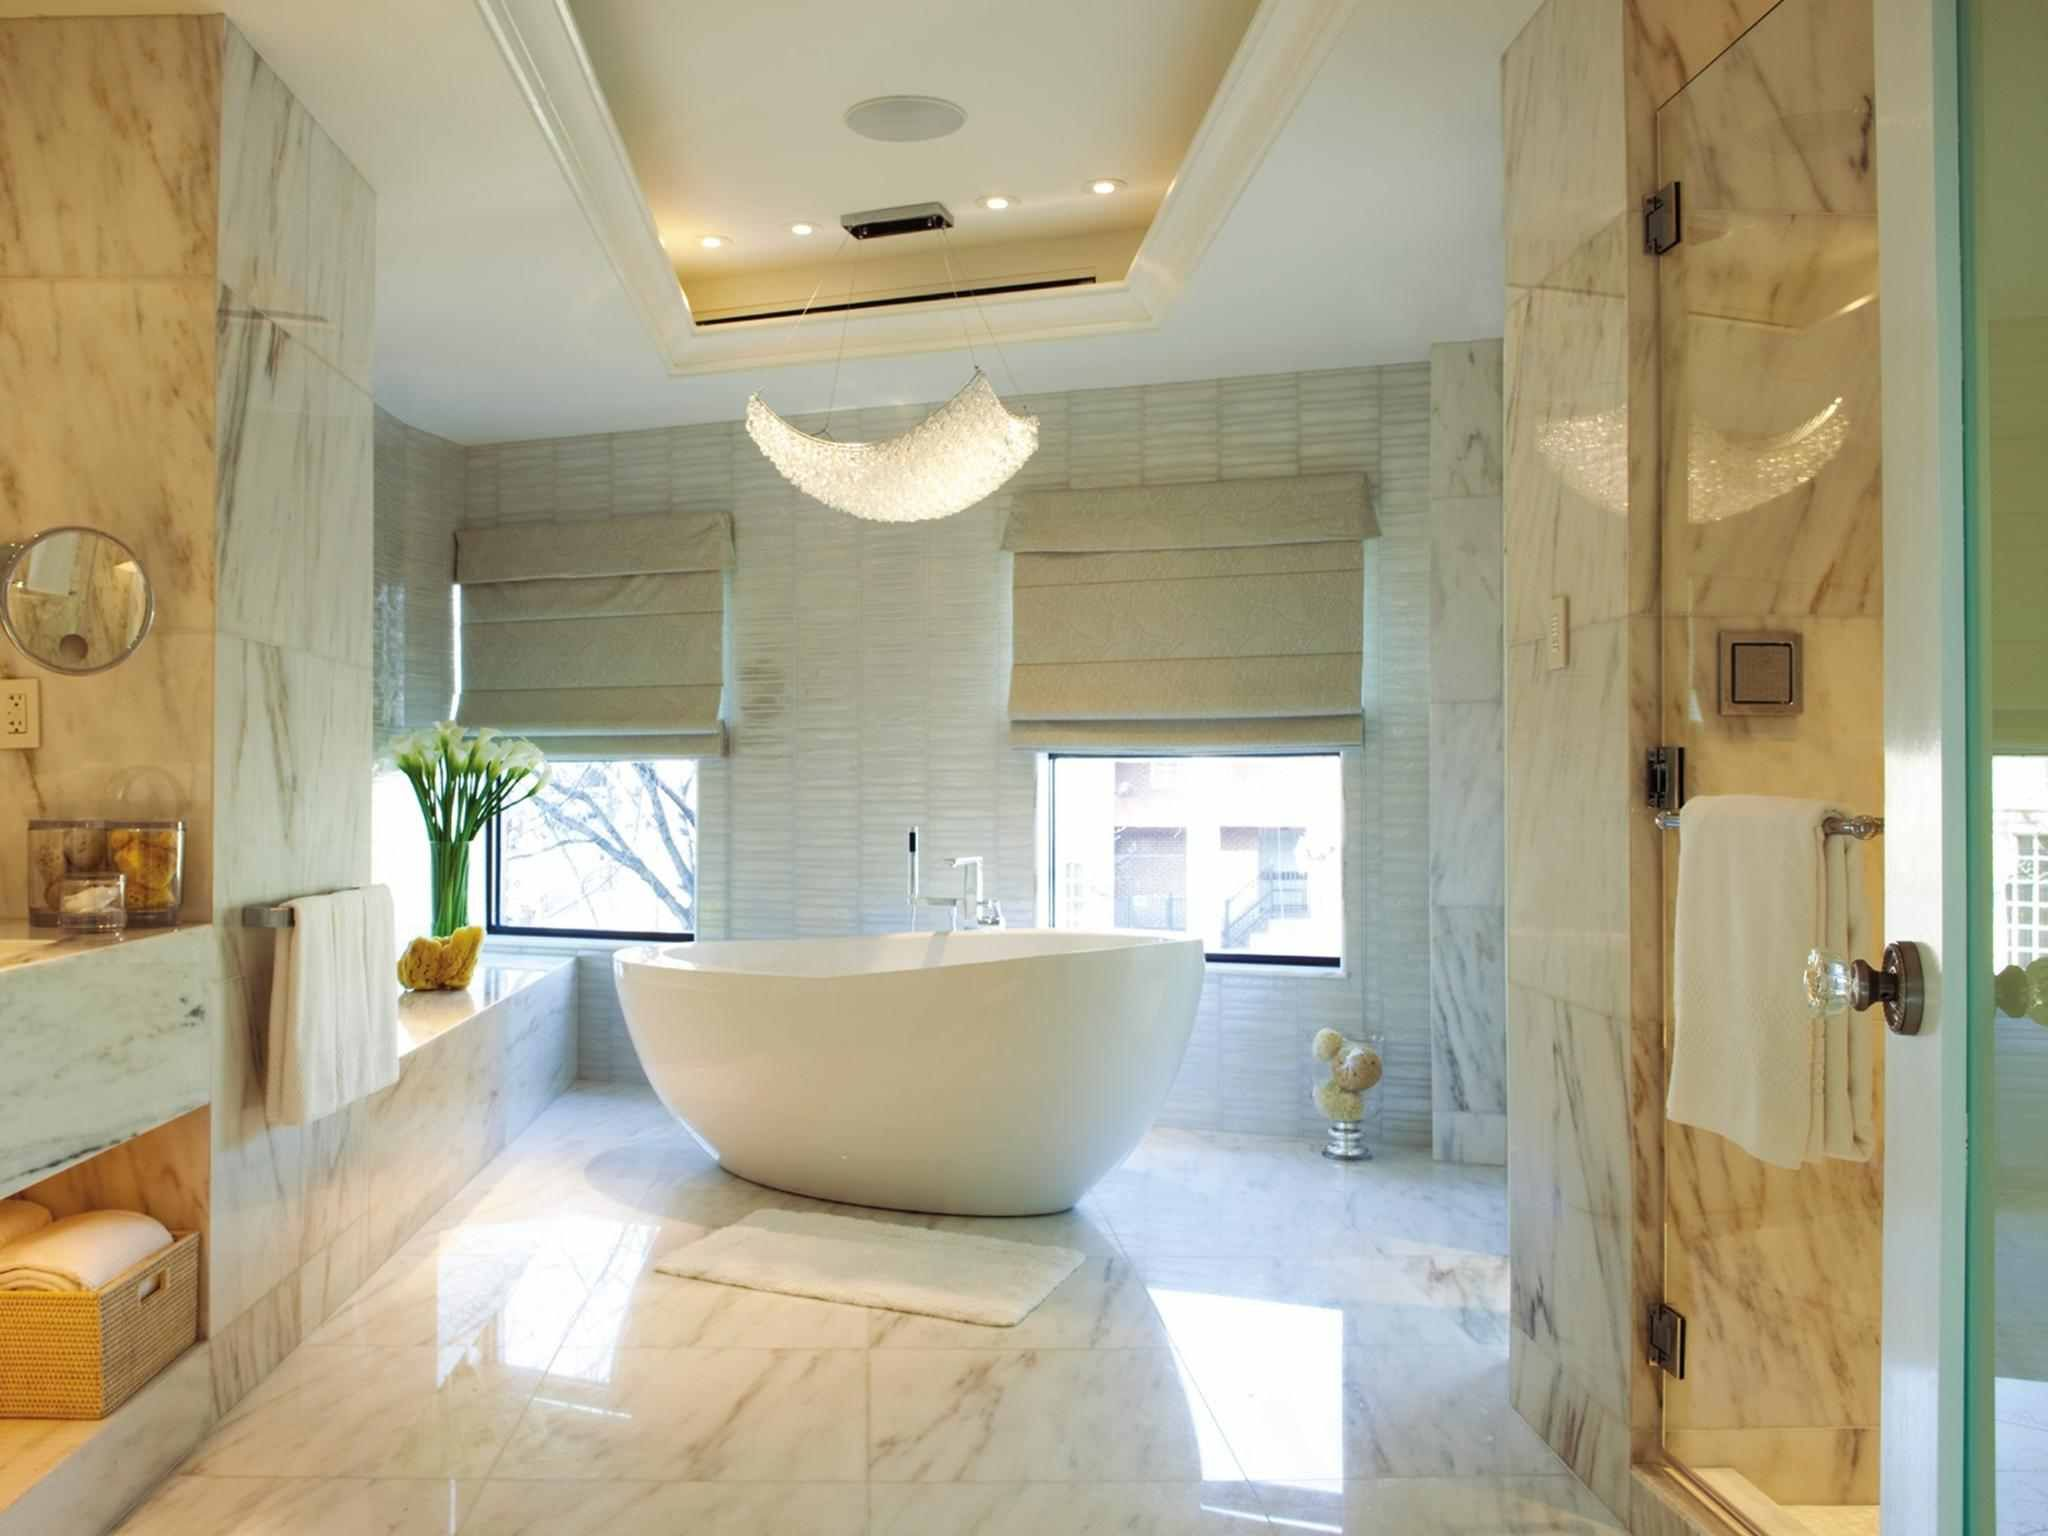 Love the color marble used on the floor and walls.  Perfect